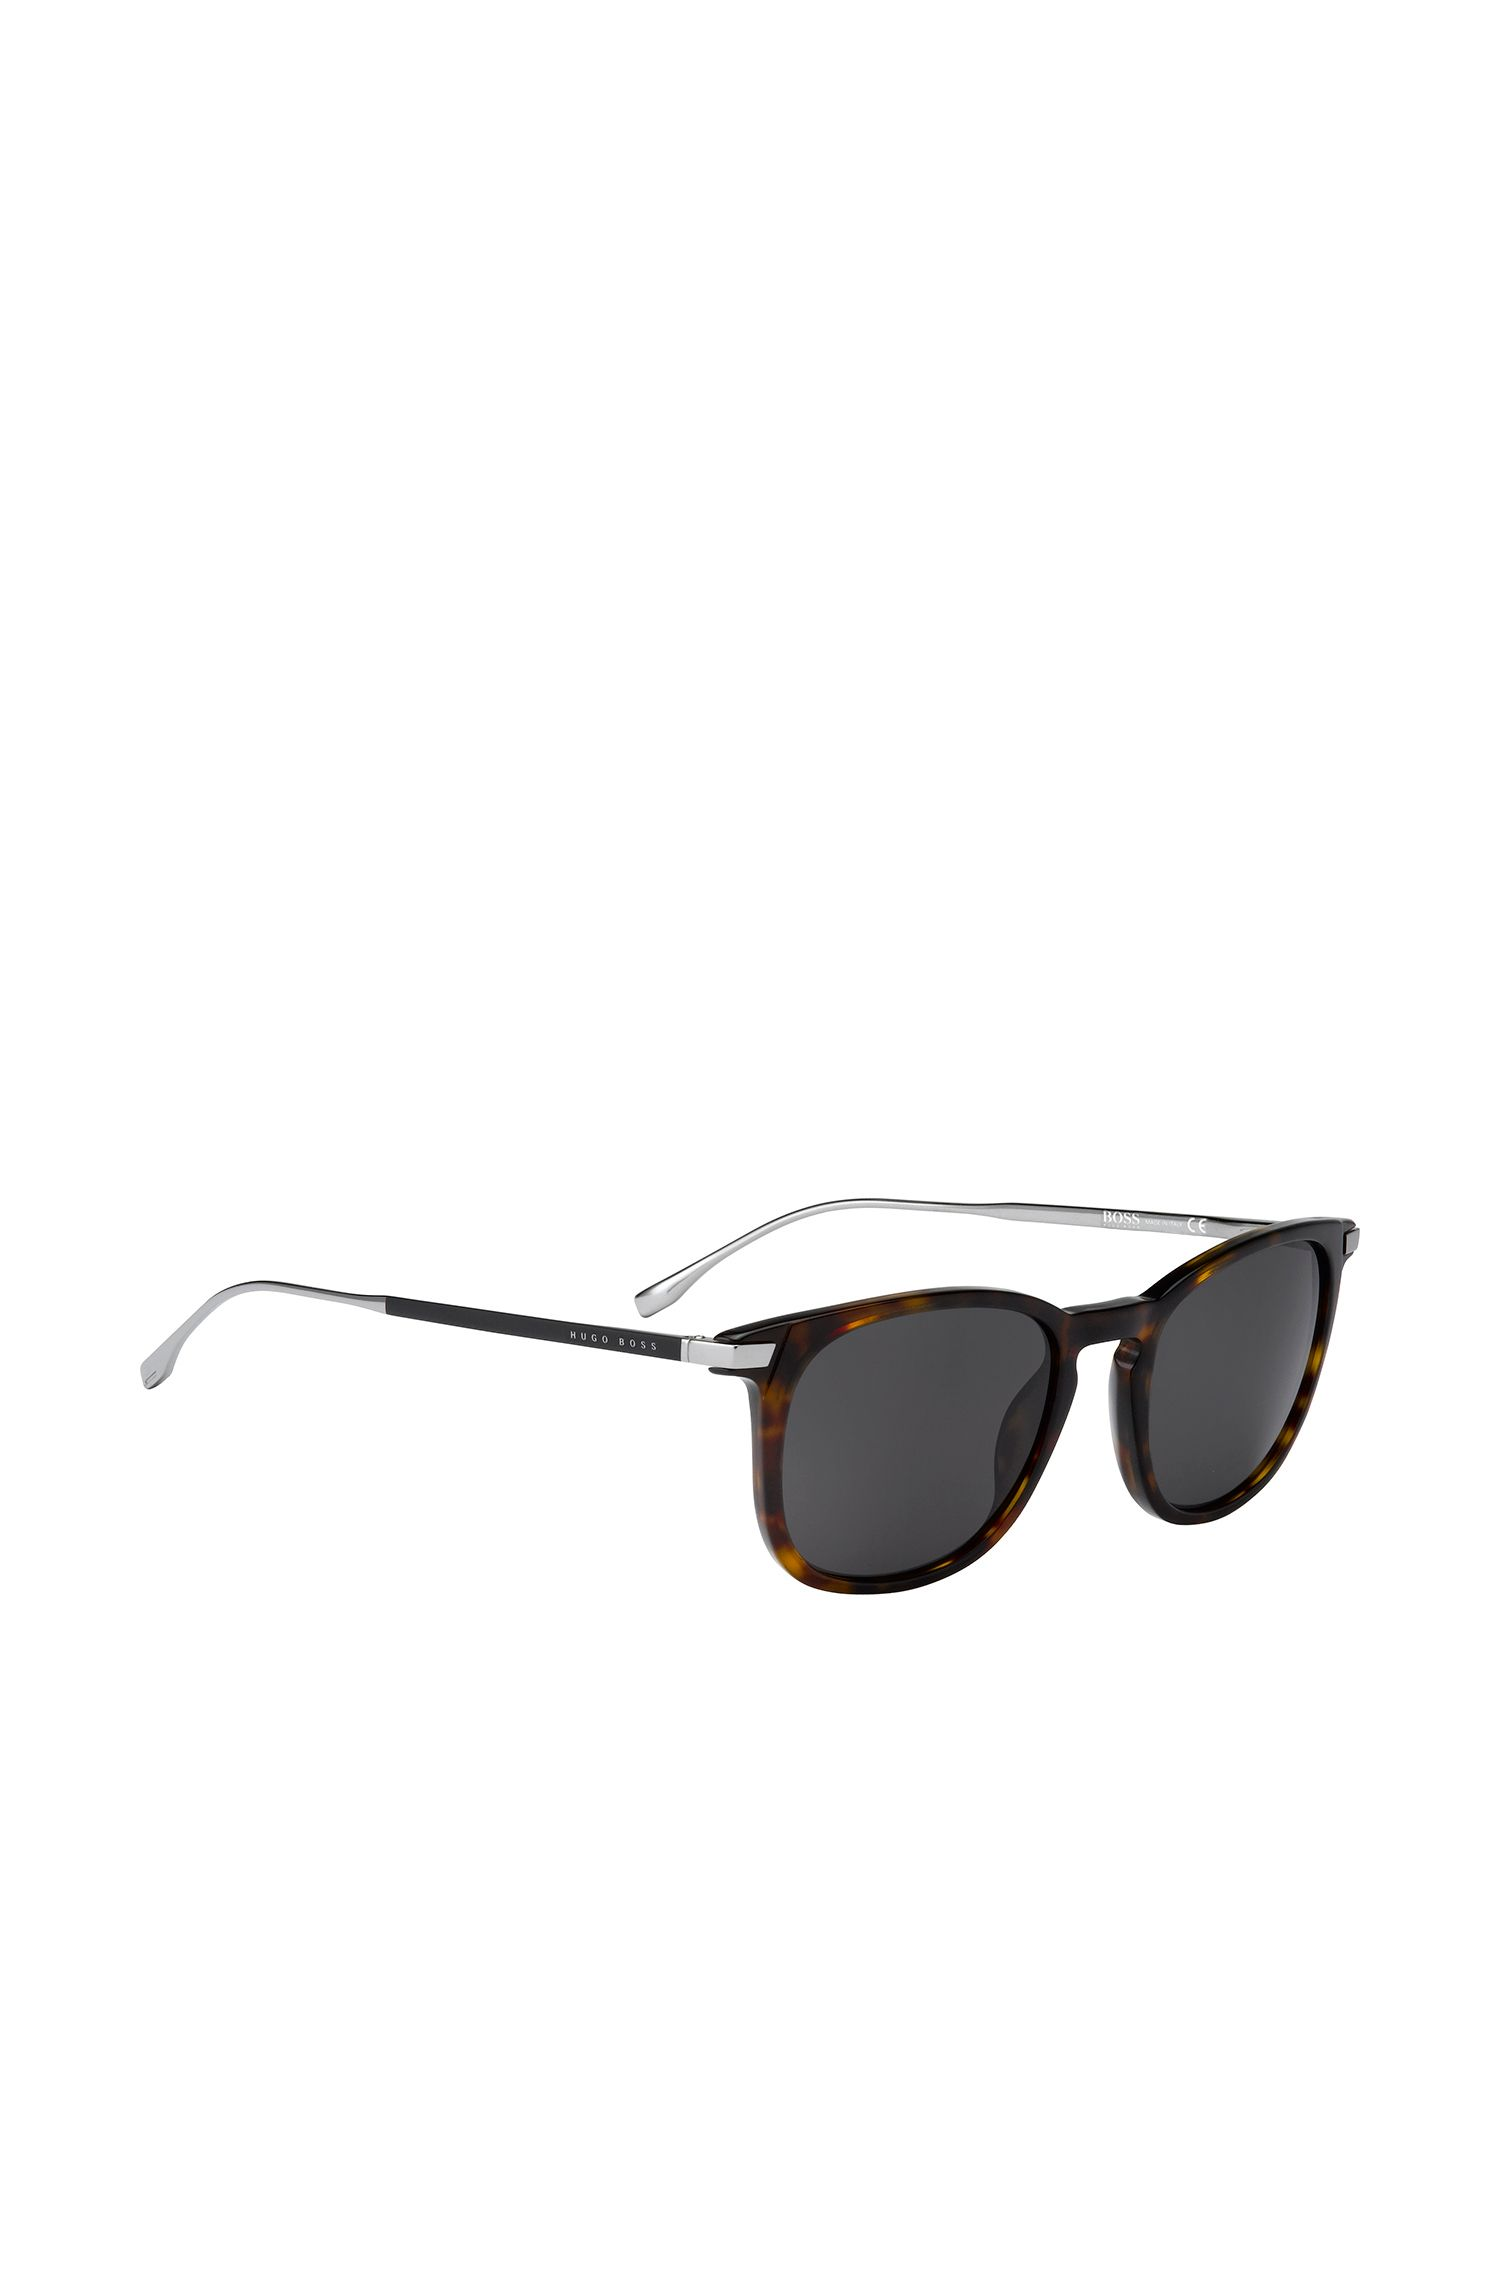 'BOSS 0783S' | Gray Lens Acetate Sunglasses